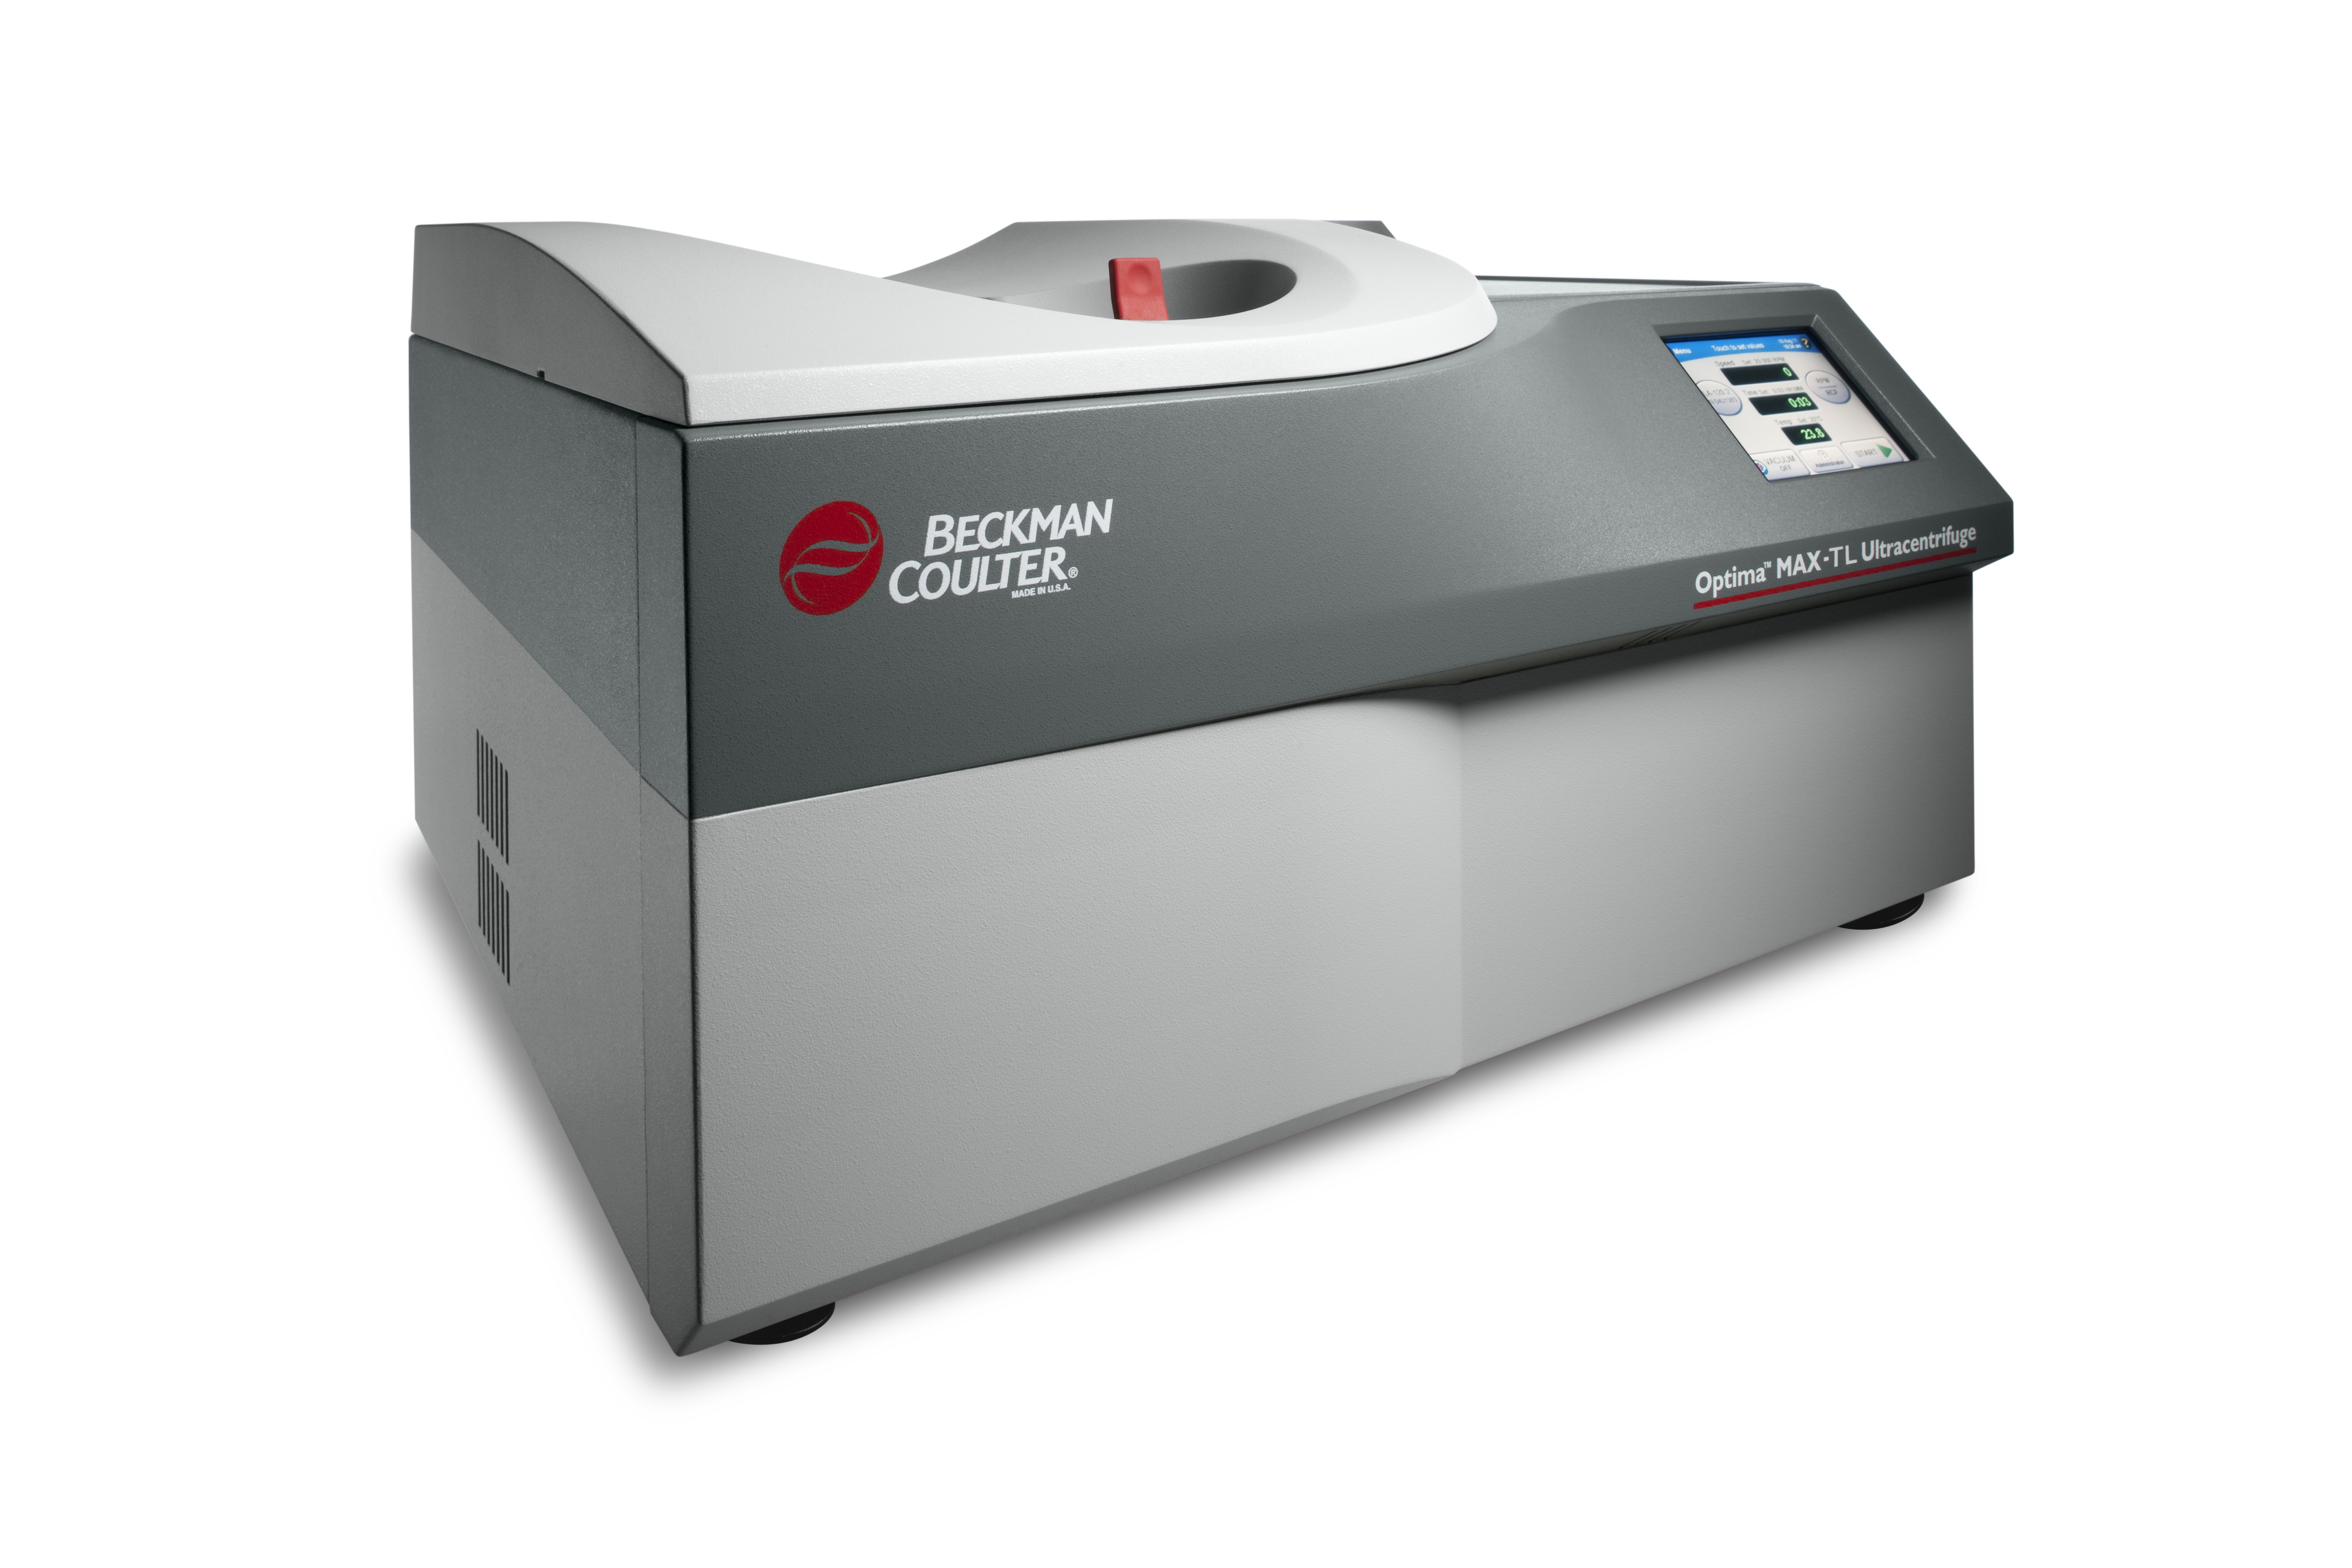 Beckman Coulter Introduces The Optima Max Tl Tabletop